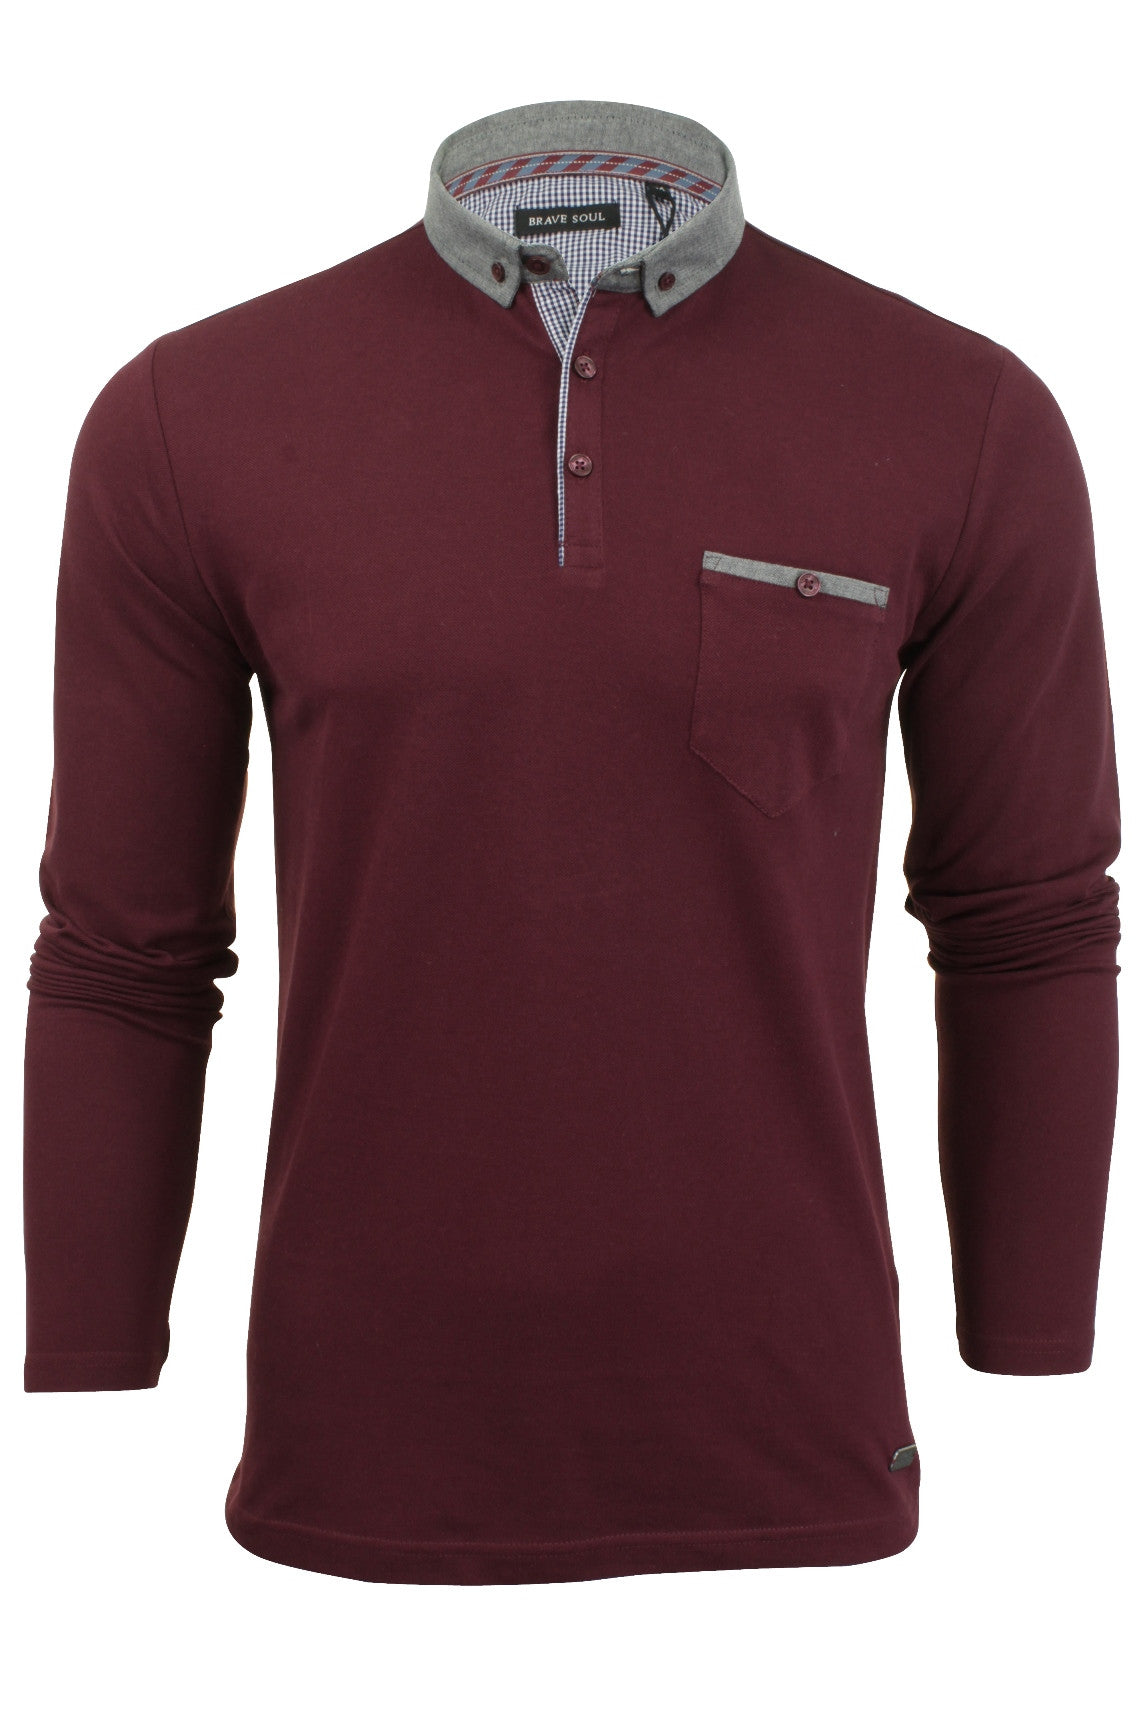 Mens Polo T-Shirt by Brave Soul 'Hera'-Main Image